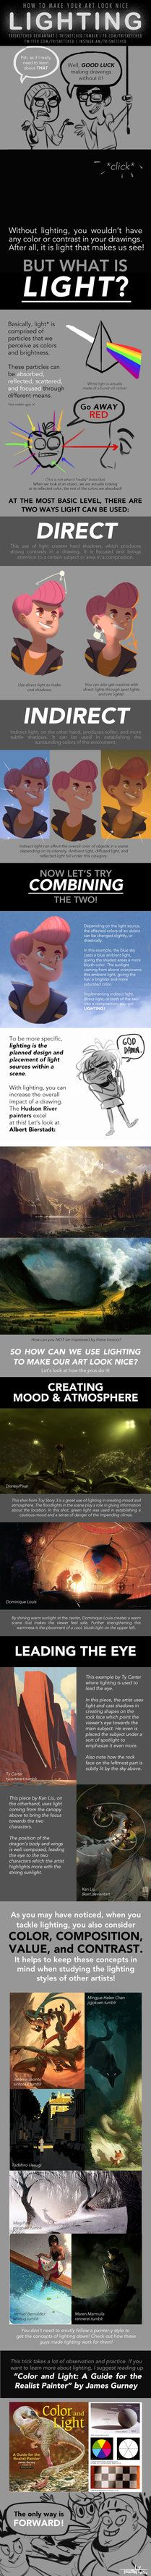 HOW TO MAKE YOUR ART LOOK NICE: Lighting by trisketched.deviantart.com on @DeviantArt